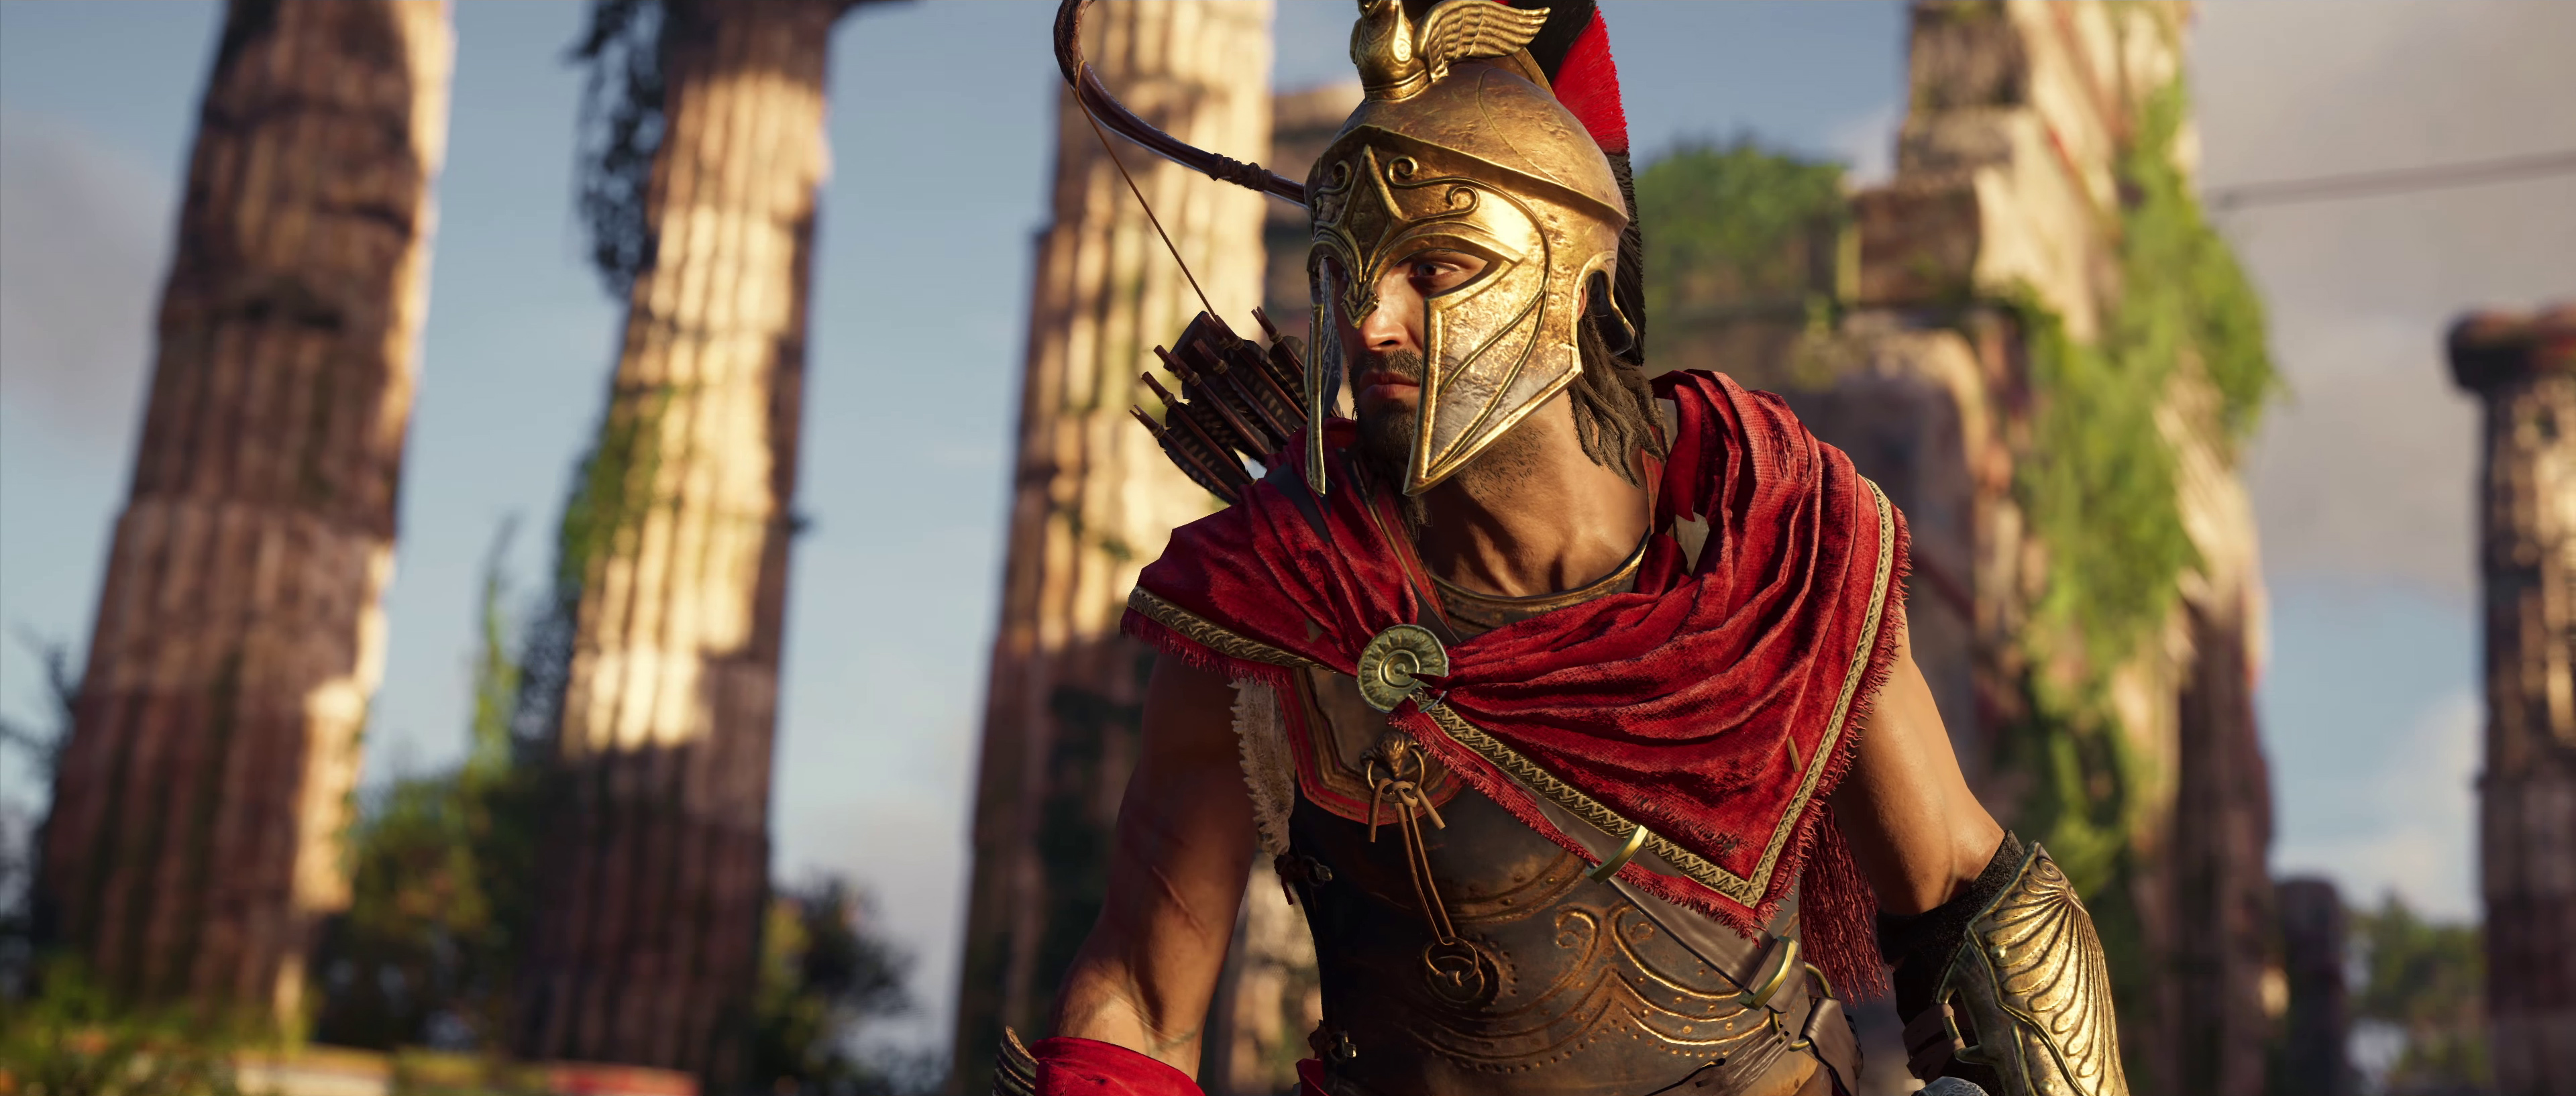 Assassin's Creed Odyssey has a huge grinding and microtransaction problem